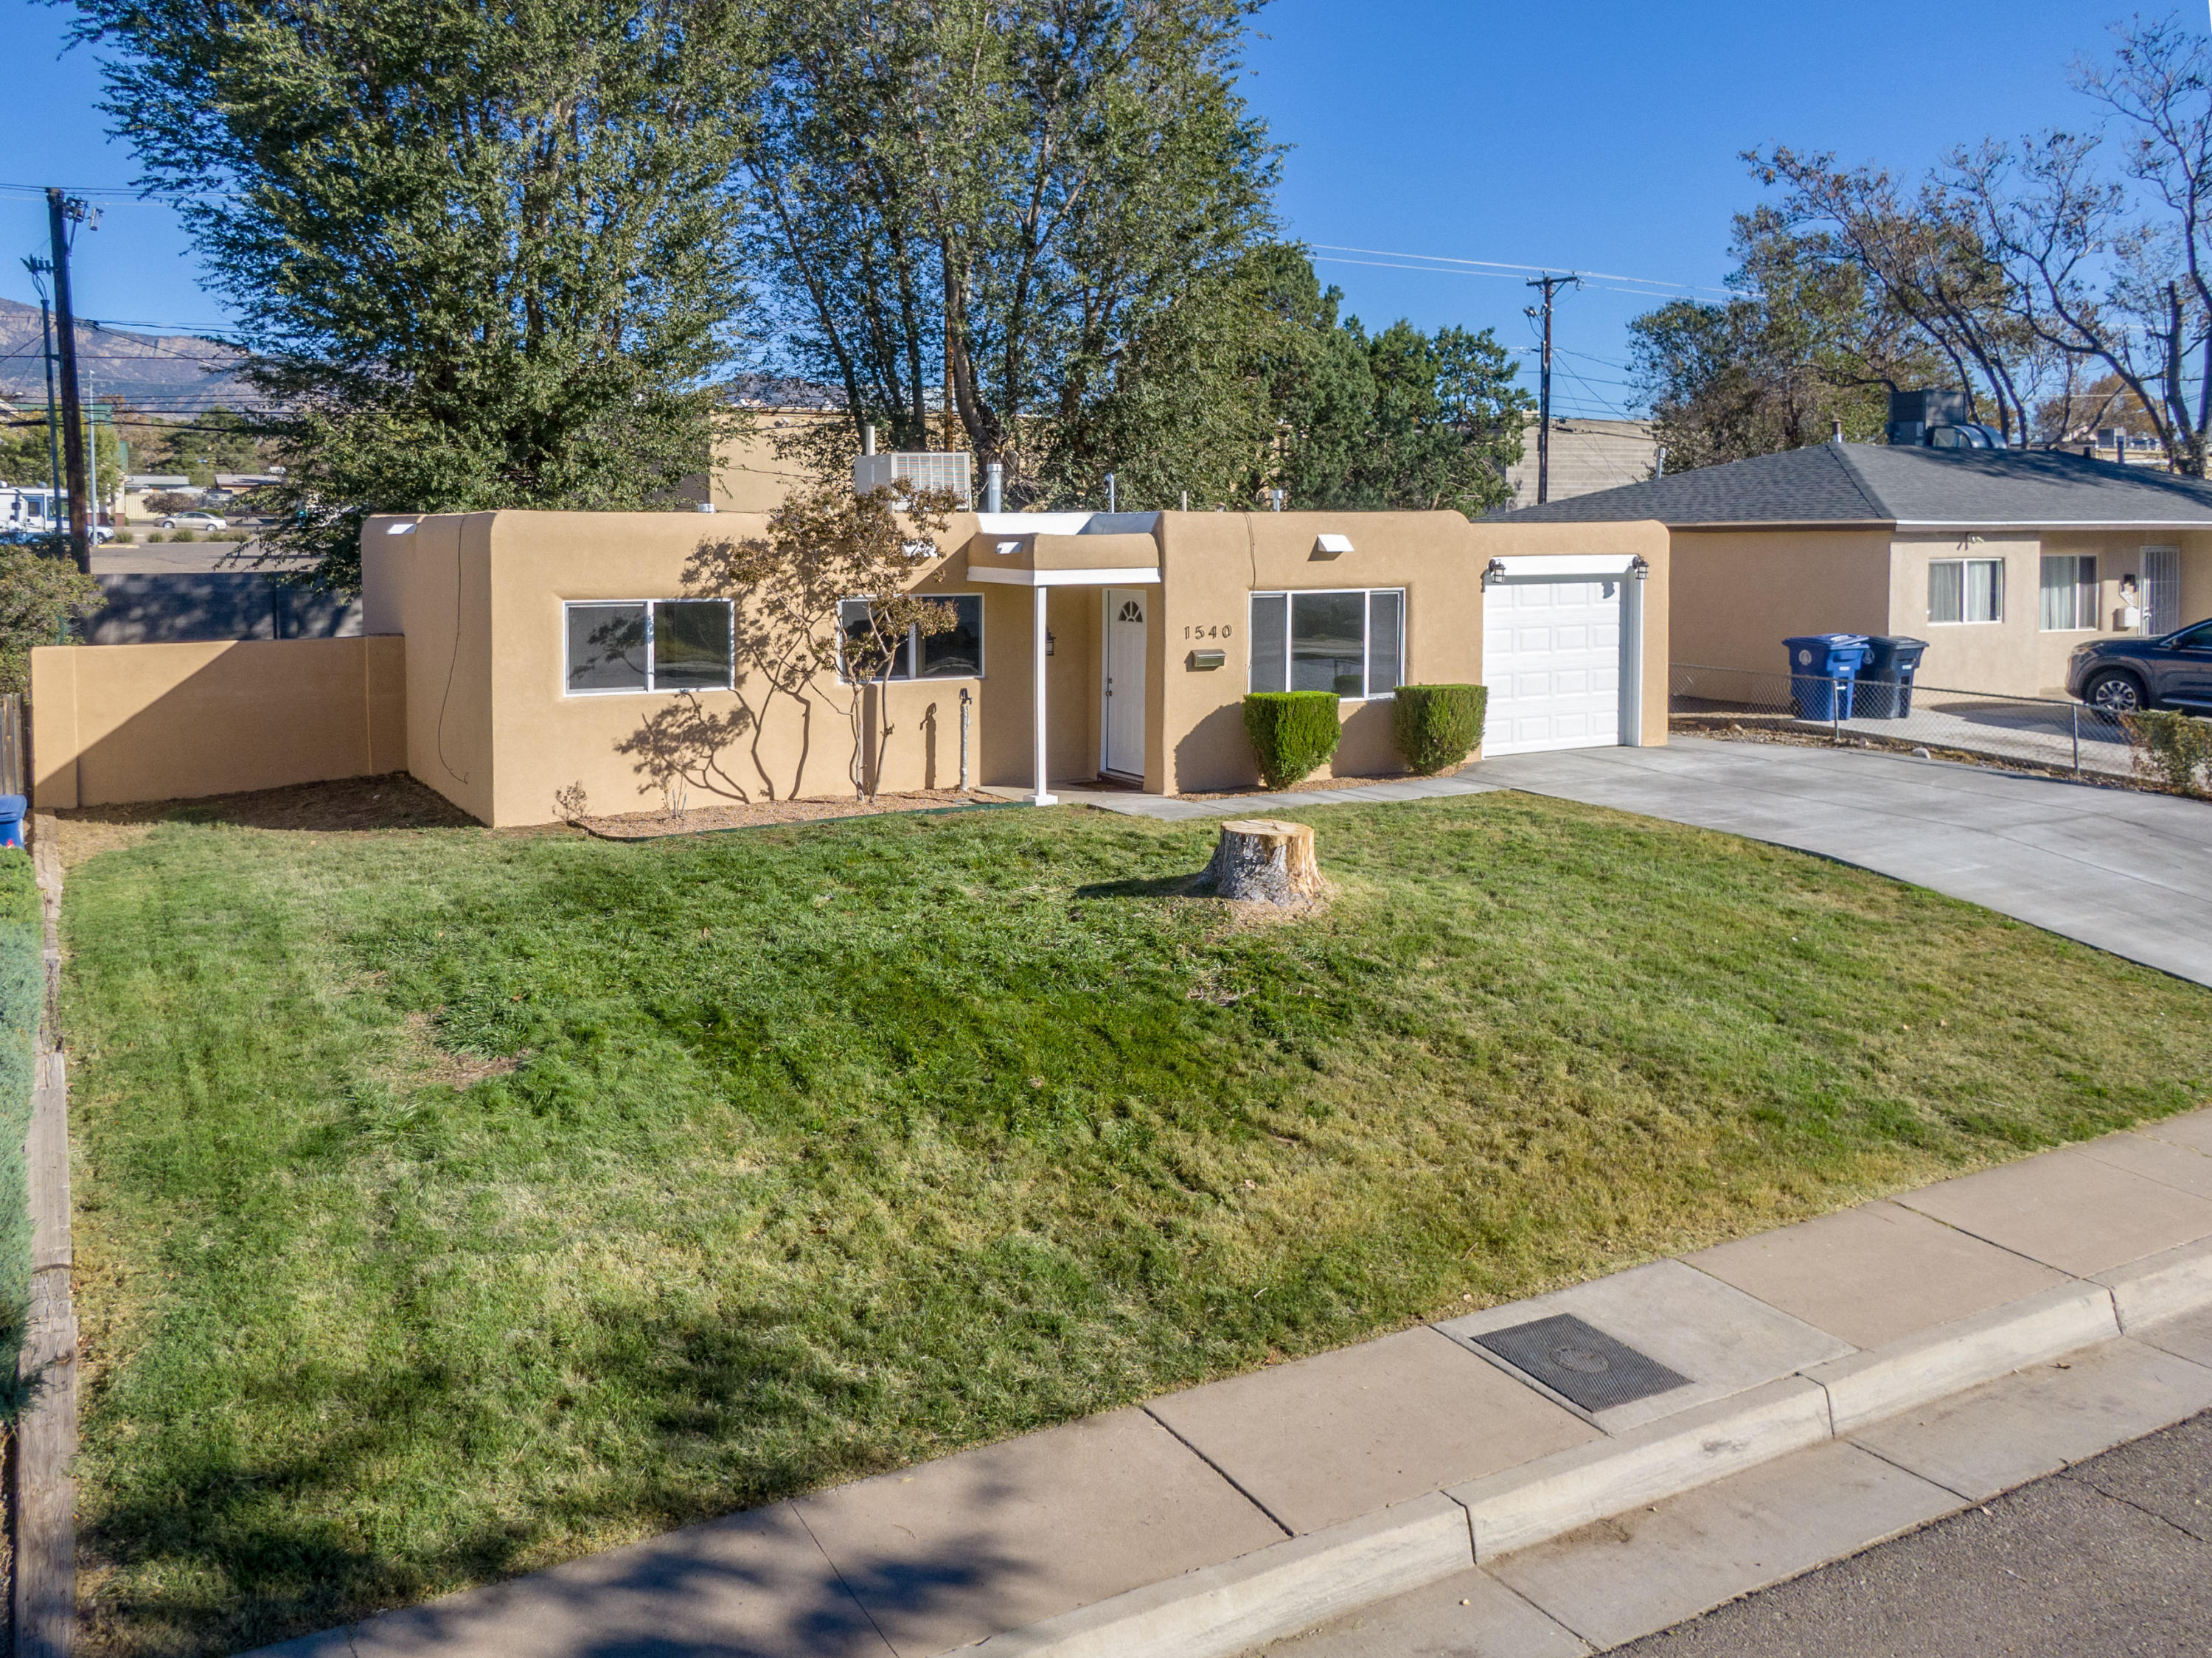 Welcome to this Bright, Beautiful, Completely Remodeled, Move-in Ready Home in Northeast Albuquerque! 1540 Glorieta features a New TPO Roof, New Synthetic Stucco, New Windows and Solid-Core Doors! The Kitchen offers New Granite Counters, Brand-New Samsung Stainless Appliances, New Cabinetry, Breakfast Bar, and a Striking View of the Sandias! The Renovated Full-Bath presents New Custom Cabinetry with Soft-Close Drawers, Granite Countertop/Backsplash, New Tile, and New Bathtub! Lifeproof Waterproof Luxury Vinyl Flooring Throughout. No Carpet! Fresh Paint Throughout. 1540 Glorieta presents you with a Large, Green, Grassy Backyard w/ Mature Shade Trees, Mountain Views, New Concrete Patio, Raised Block Walls for Privacy, Storage Shed. Conveniently Located in NE ABQ w/ Easy Access to Everything!